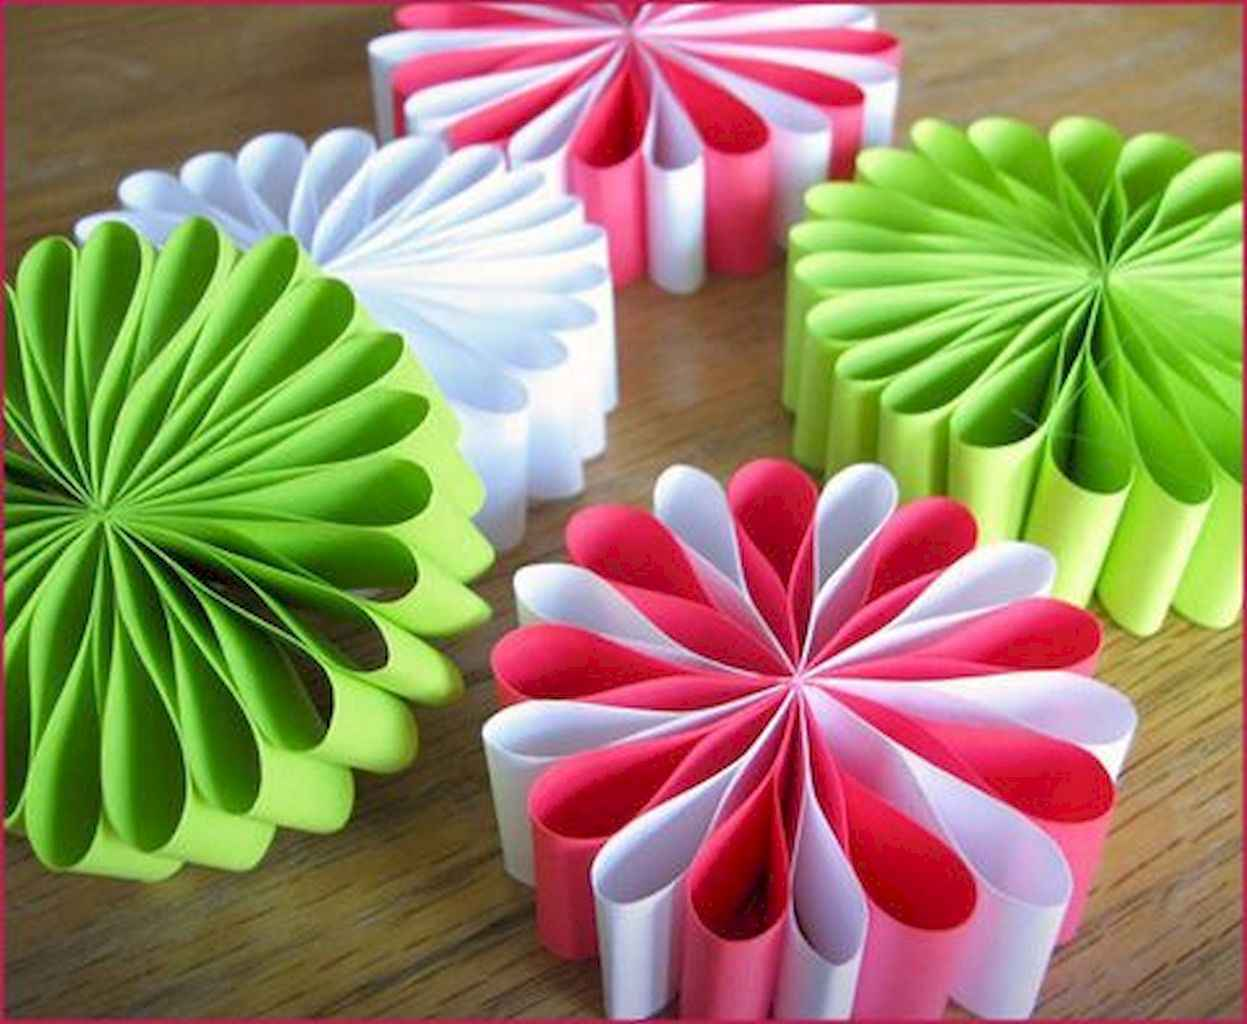 20 Easy Christmas Crafts Ideas (7)